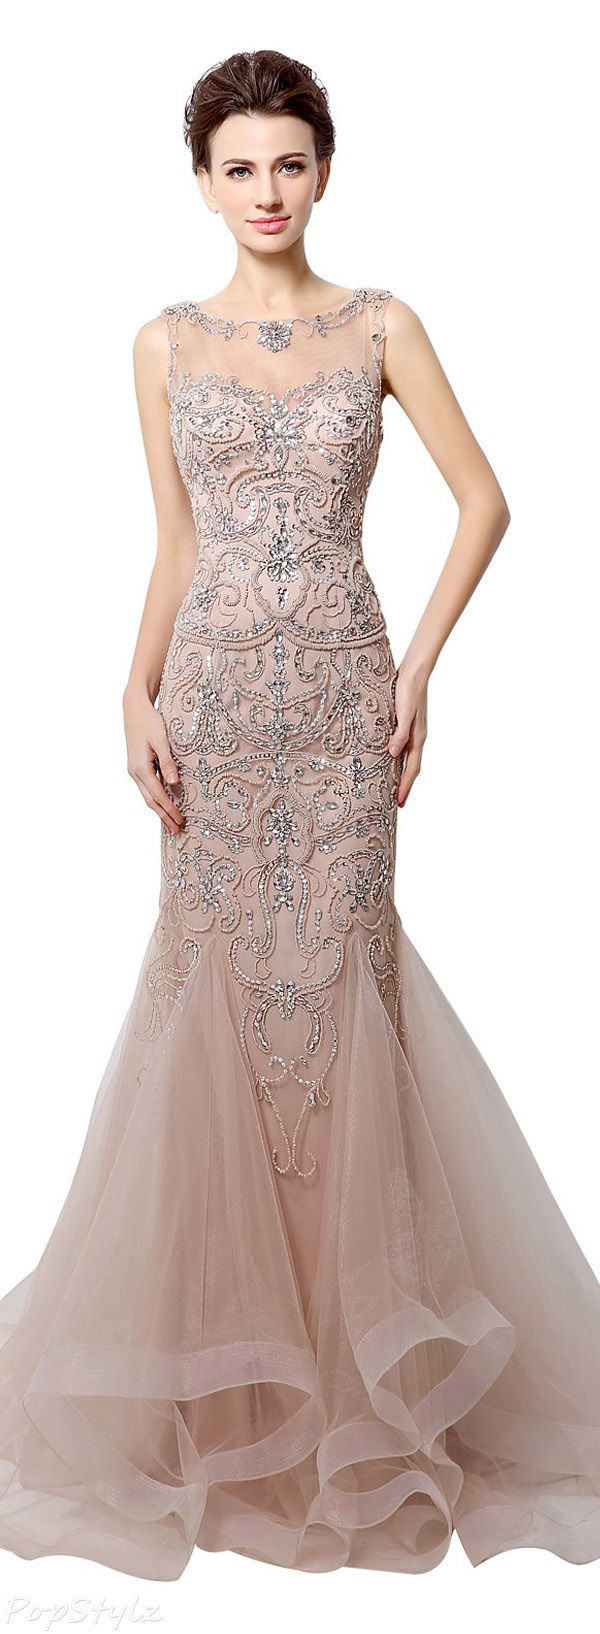 17  ideas about Mermaid Evening Gown on Pinterest  Long dresses ...